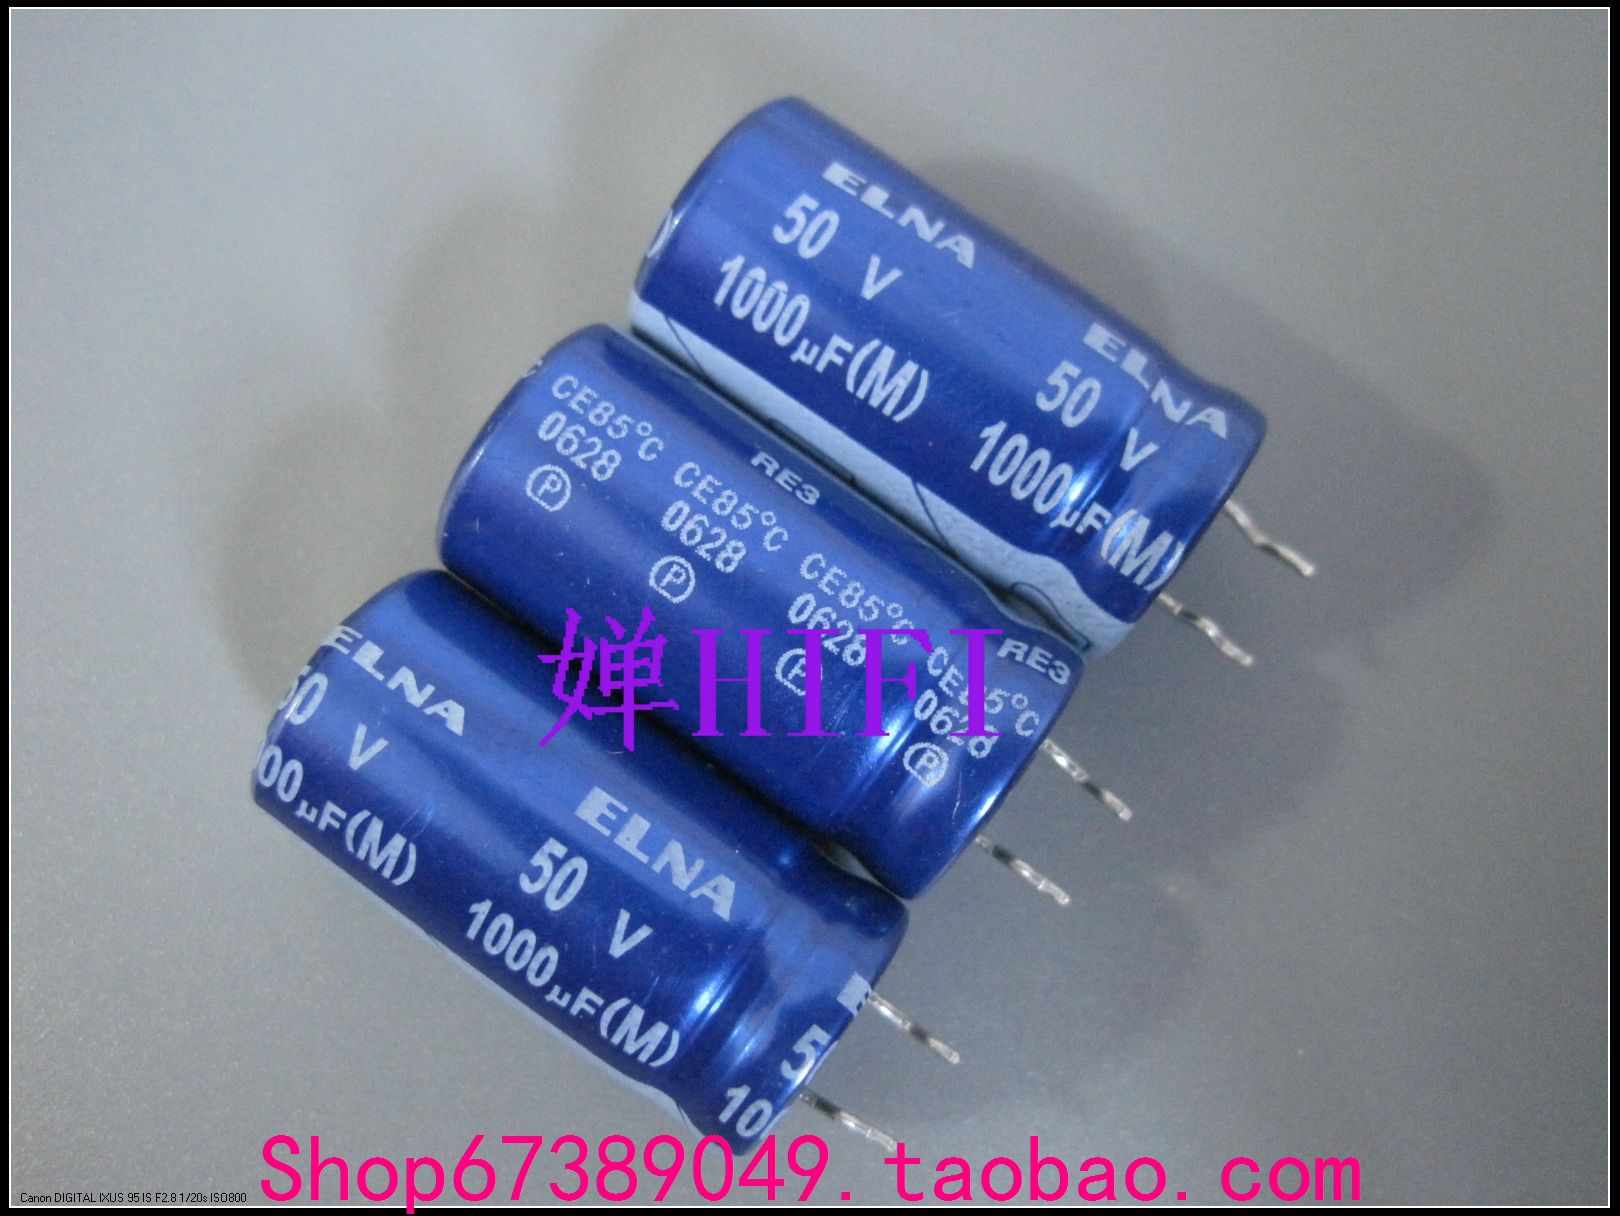 2019 hot sale 20PCS/50PCS Imported ELNA original <font><b>50V</b></font> <font><b>1000UF</b></font> RE3 blue robe electrolytic capacitor free shipping image